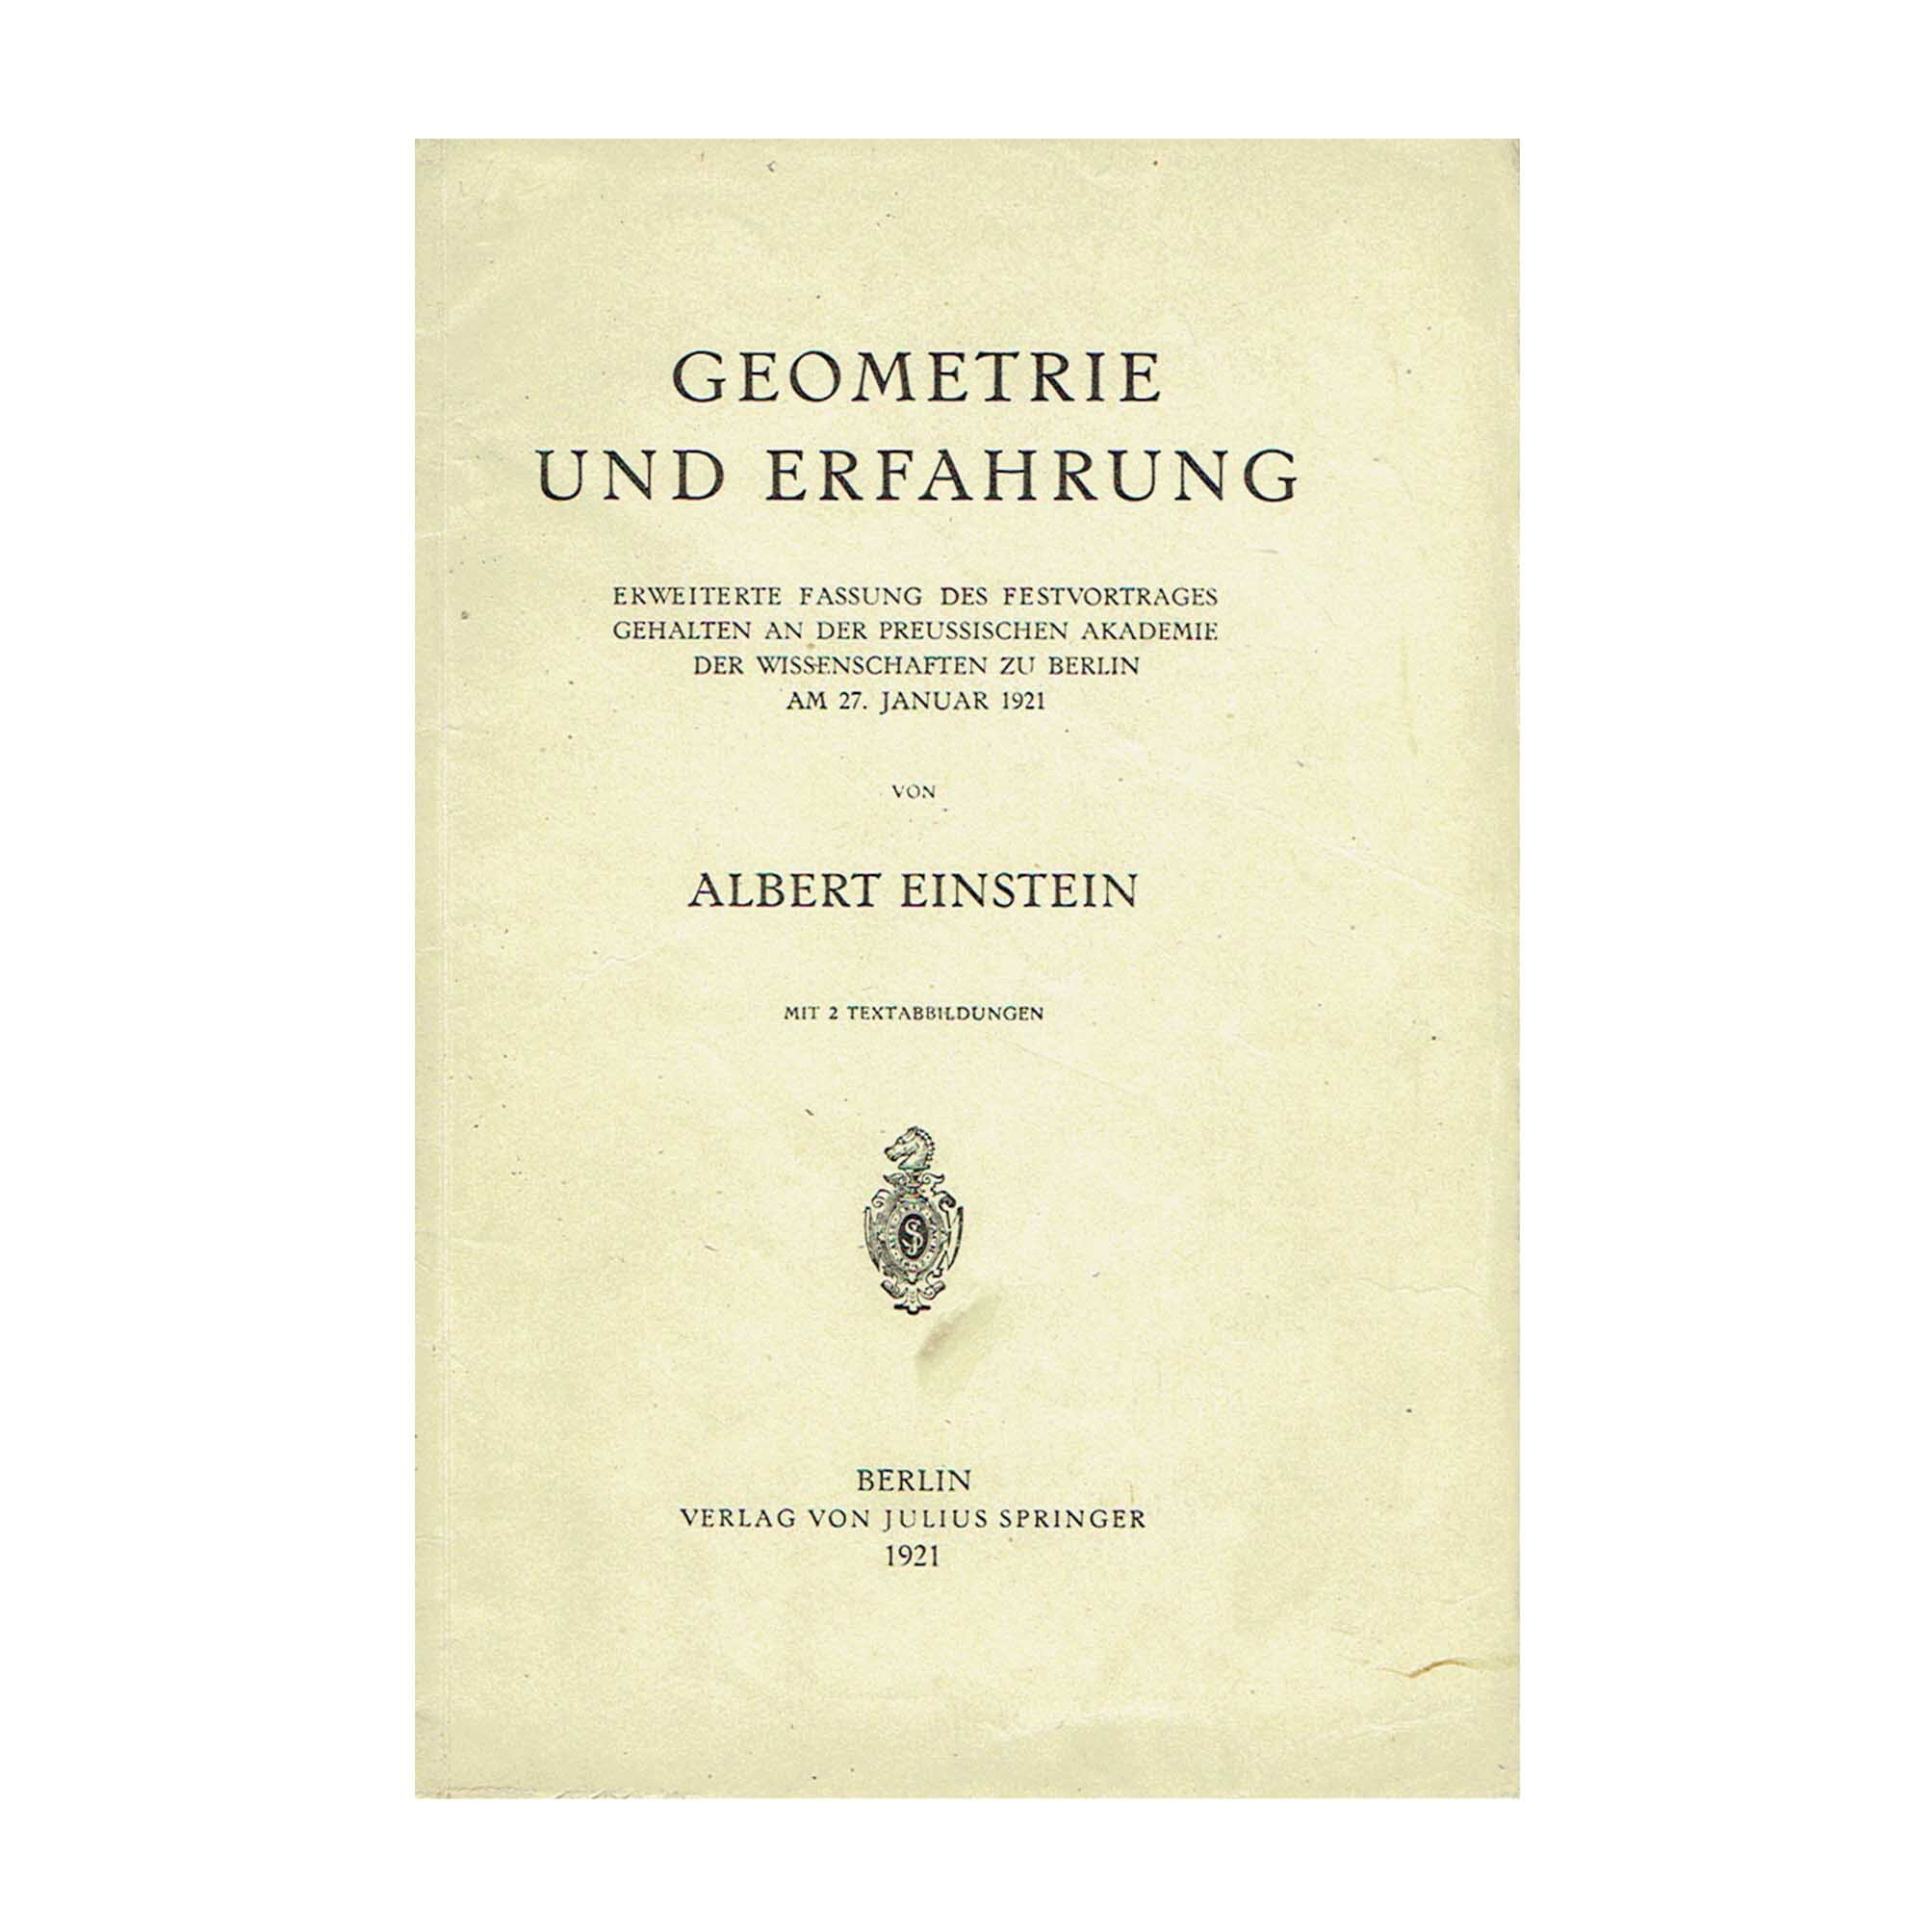 5725 Einstein Geometrie 1921 Cover recto N